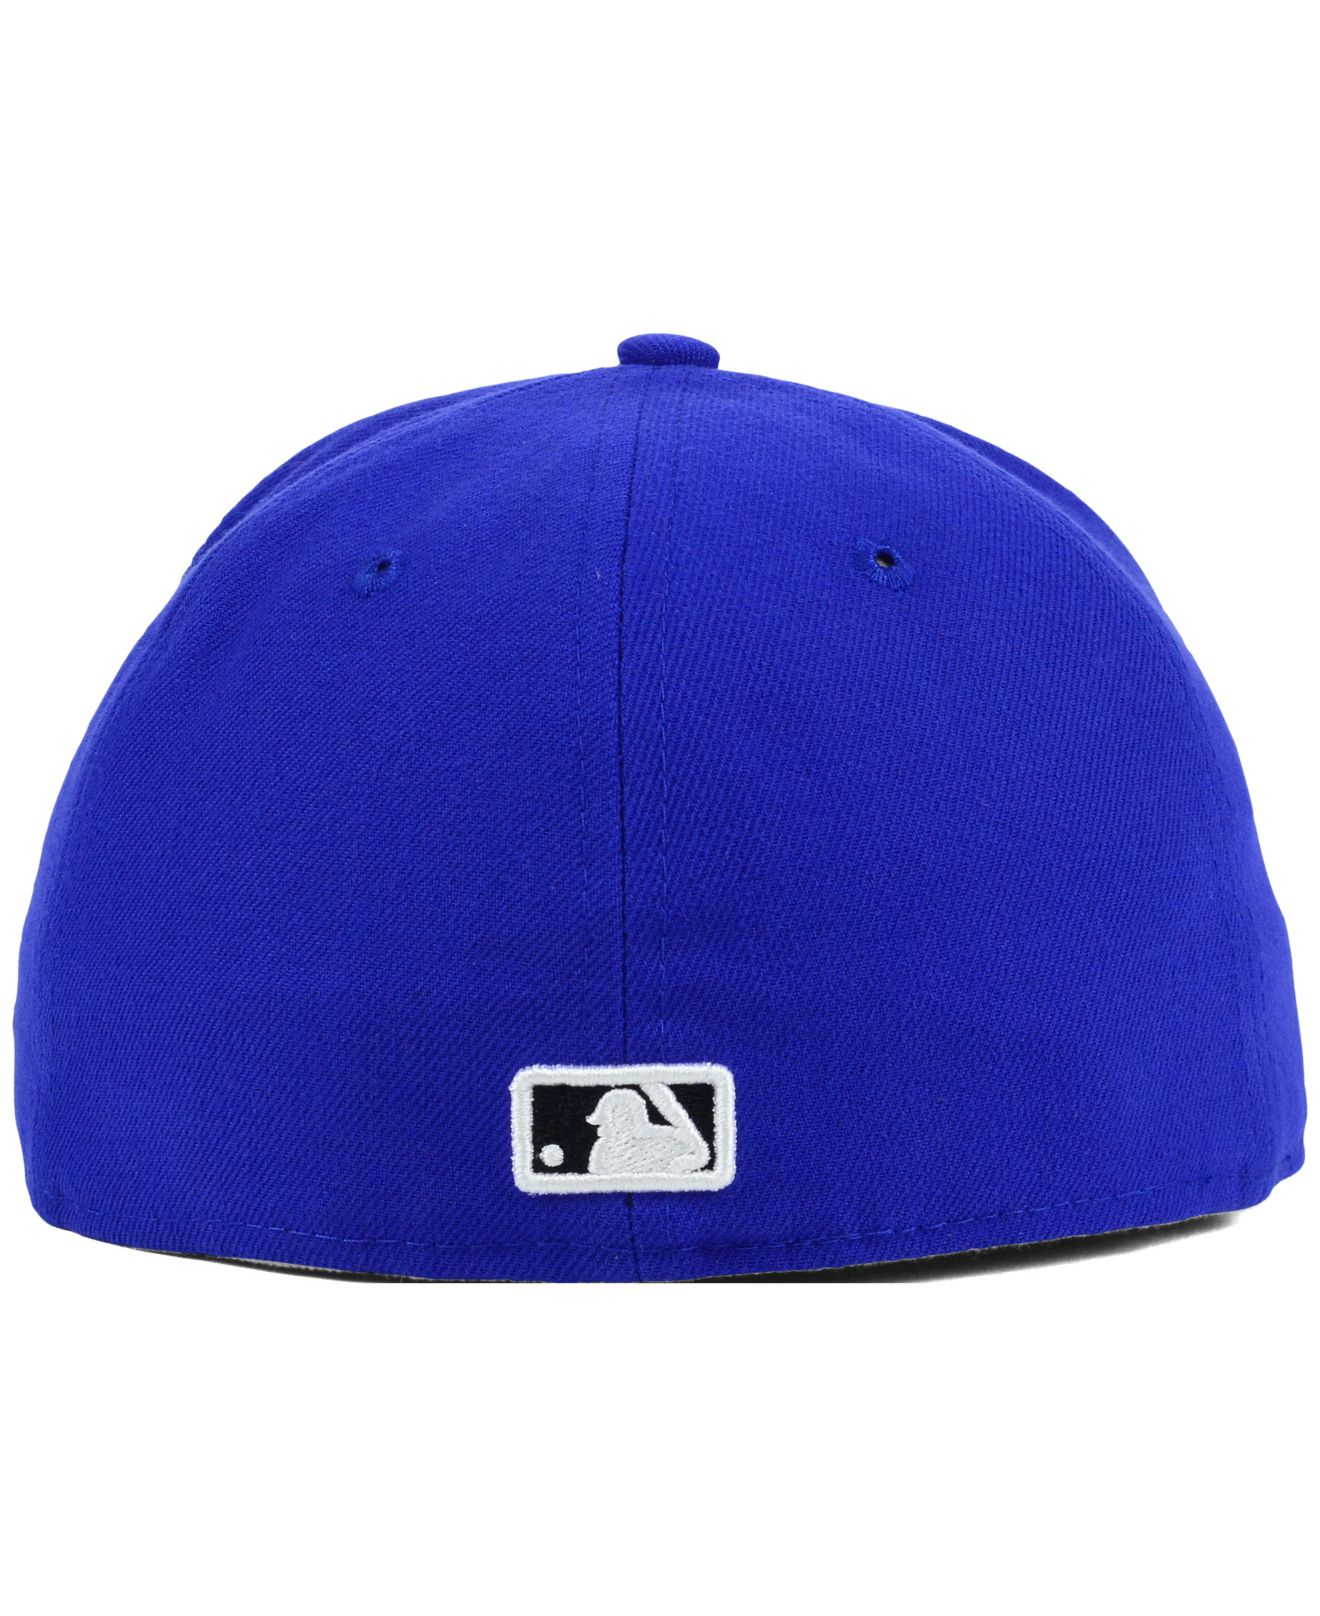 best sneakers 7acbc 0e4ab Lyst - KTZ Chicago White Sox C-dub 59fifty Cap in Blue for Men